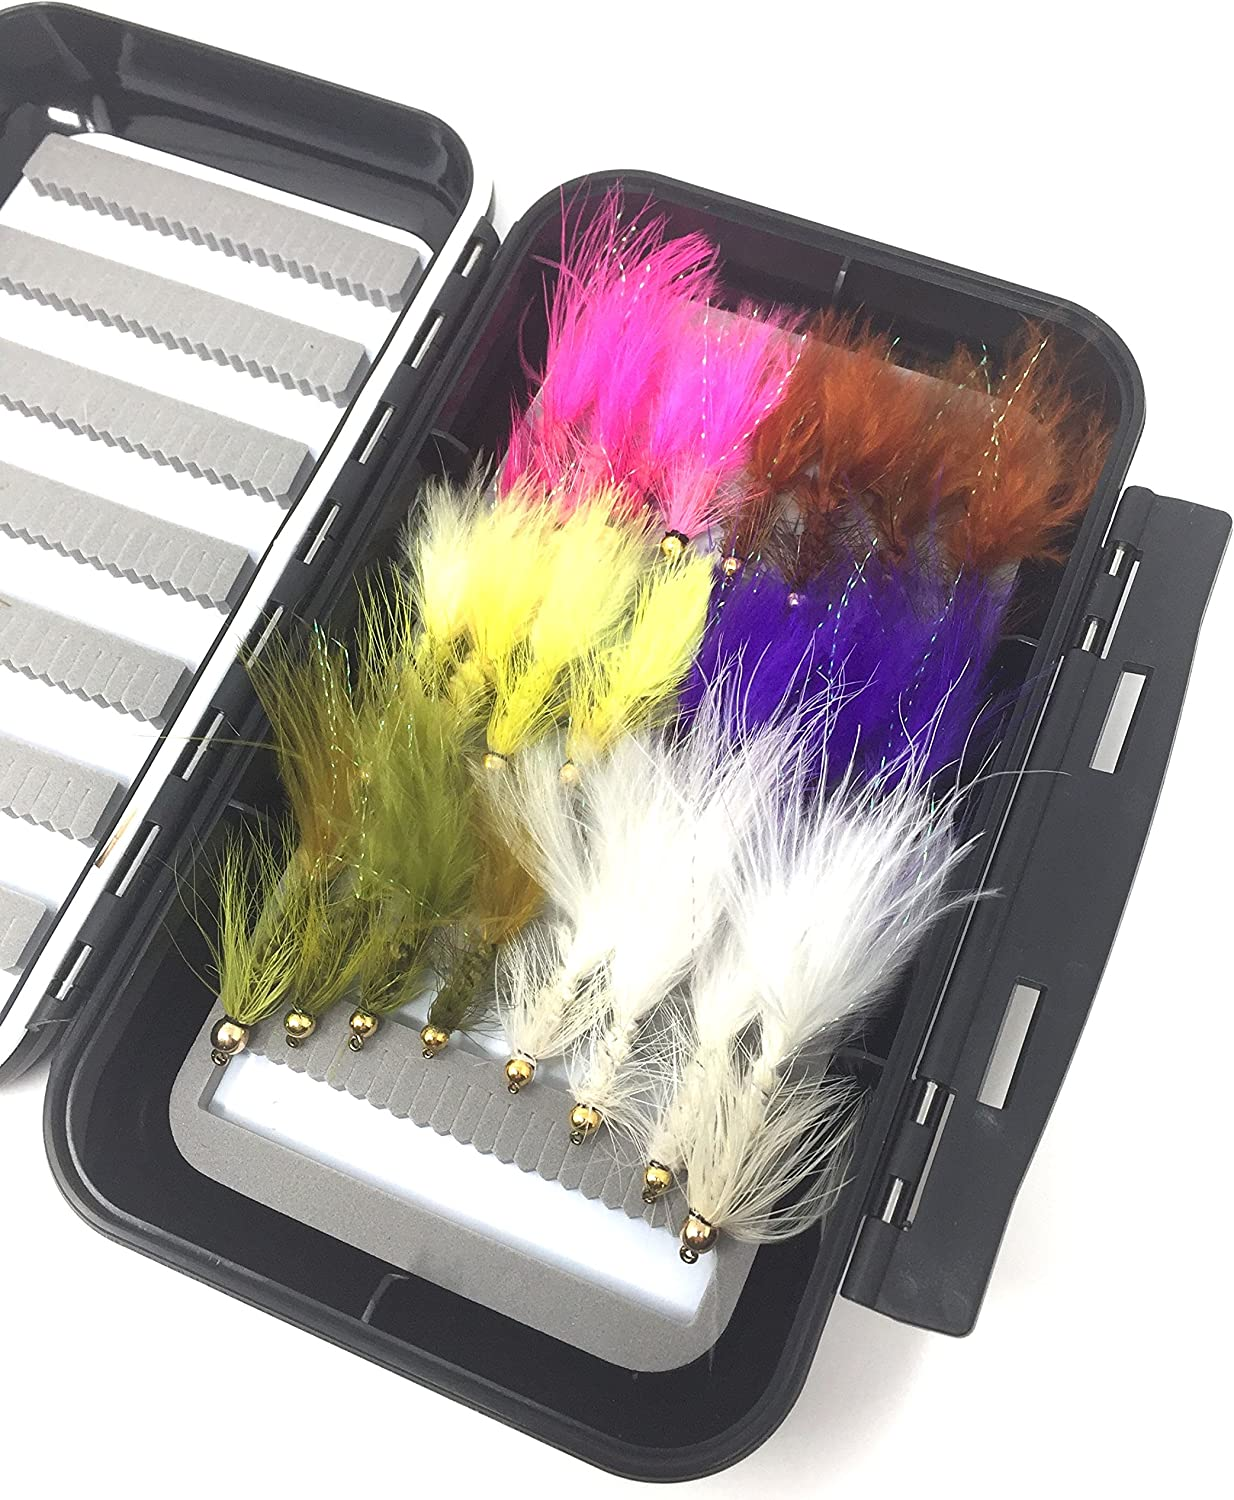 Fly Fishing Assortment - Bead Head 24 Bugger Opening large release Nashville-Davidson Mall sale Flies Wooly with